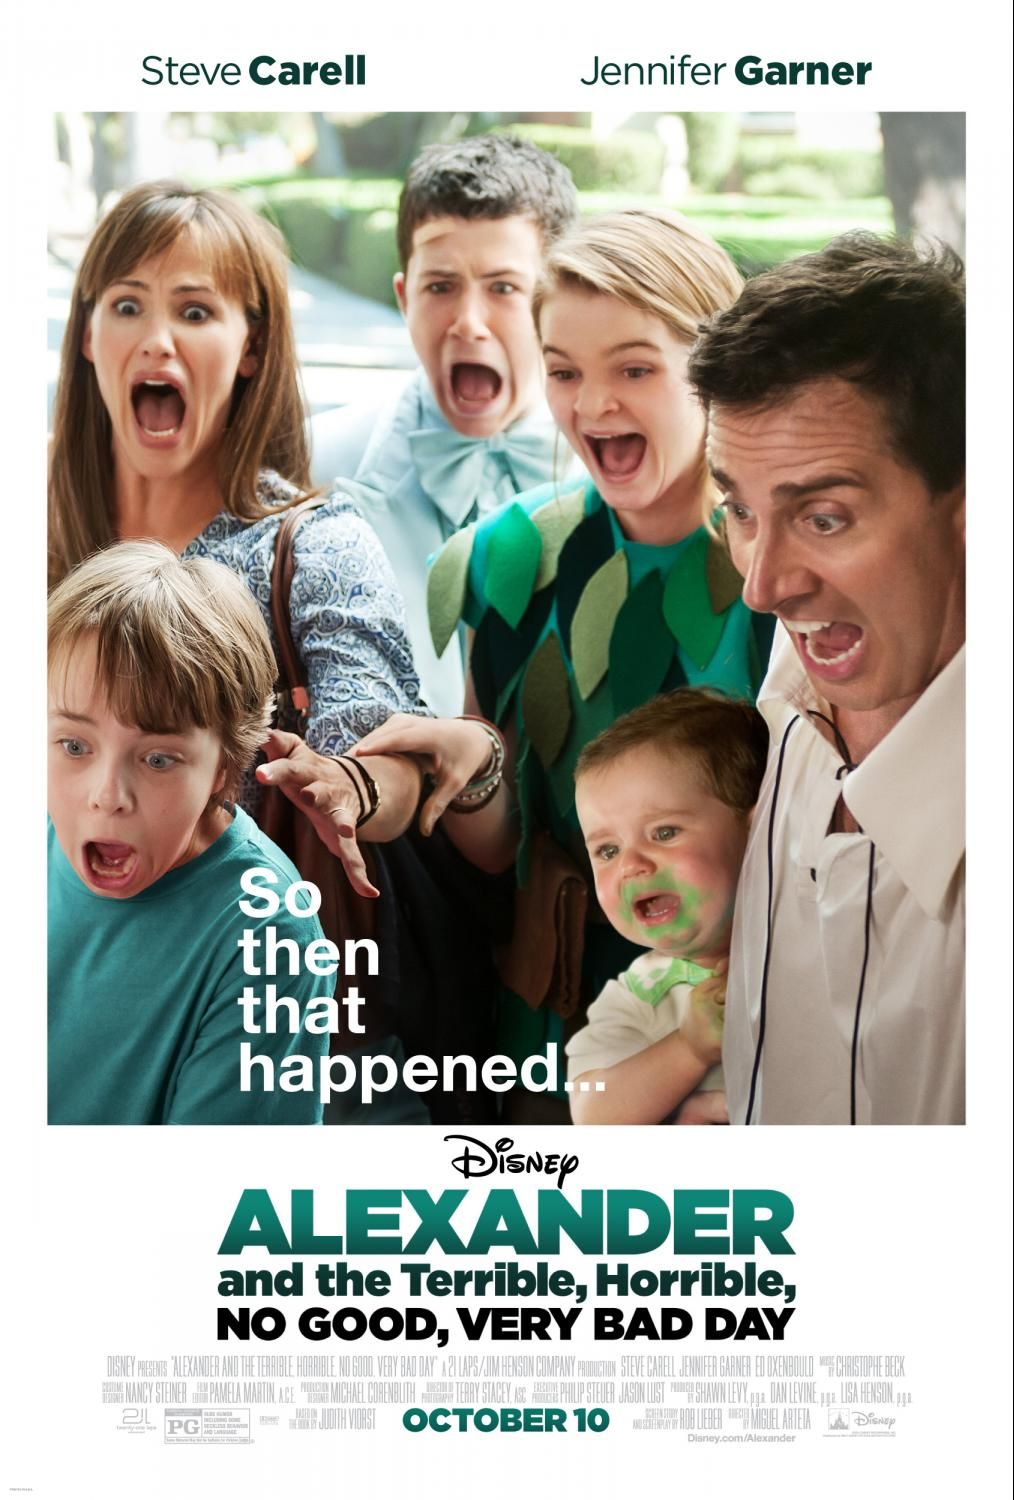 Our Thoughts On The Disney Film Alexander And The Terrible